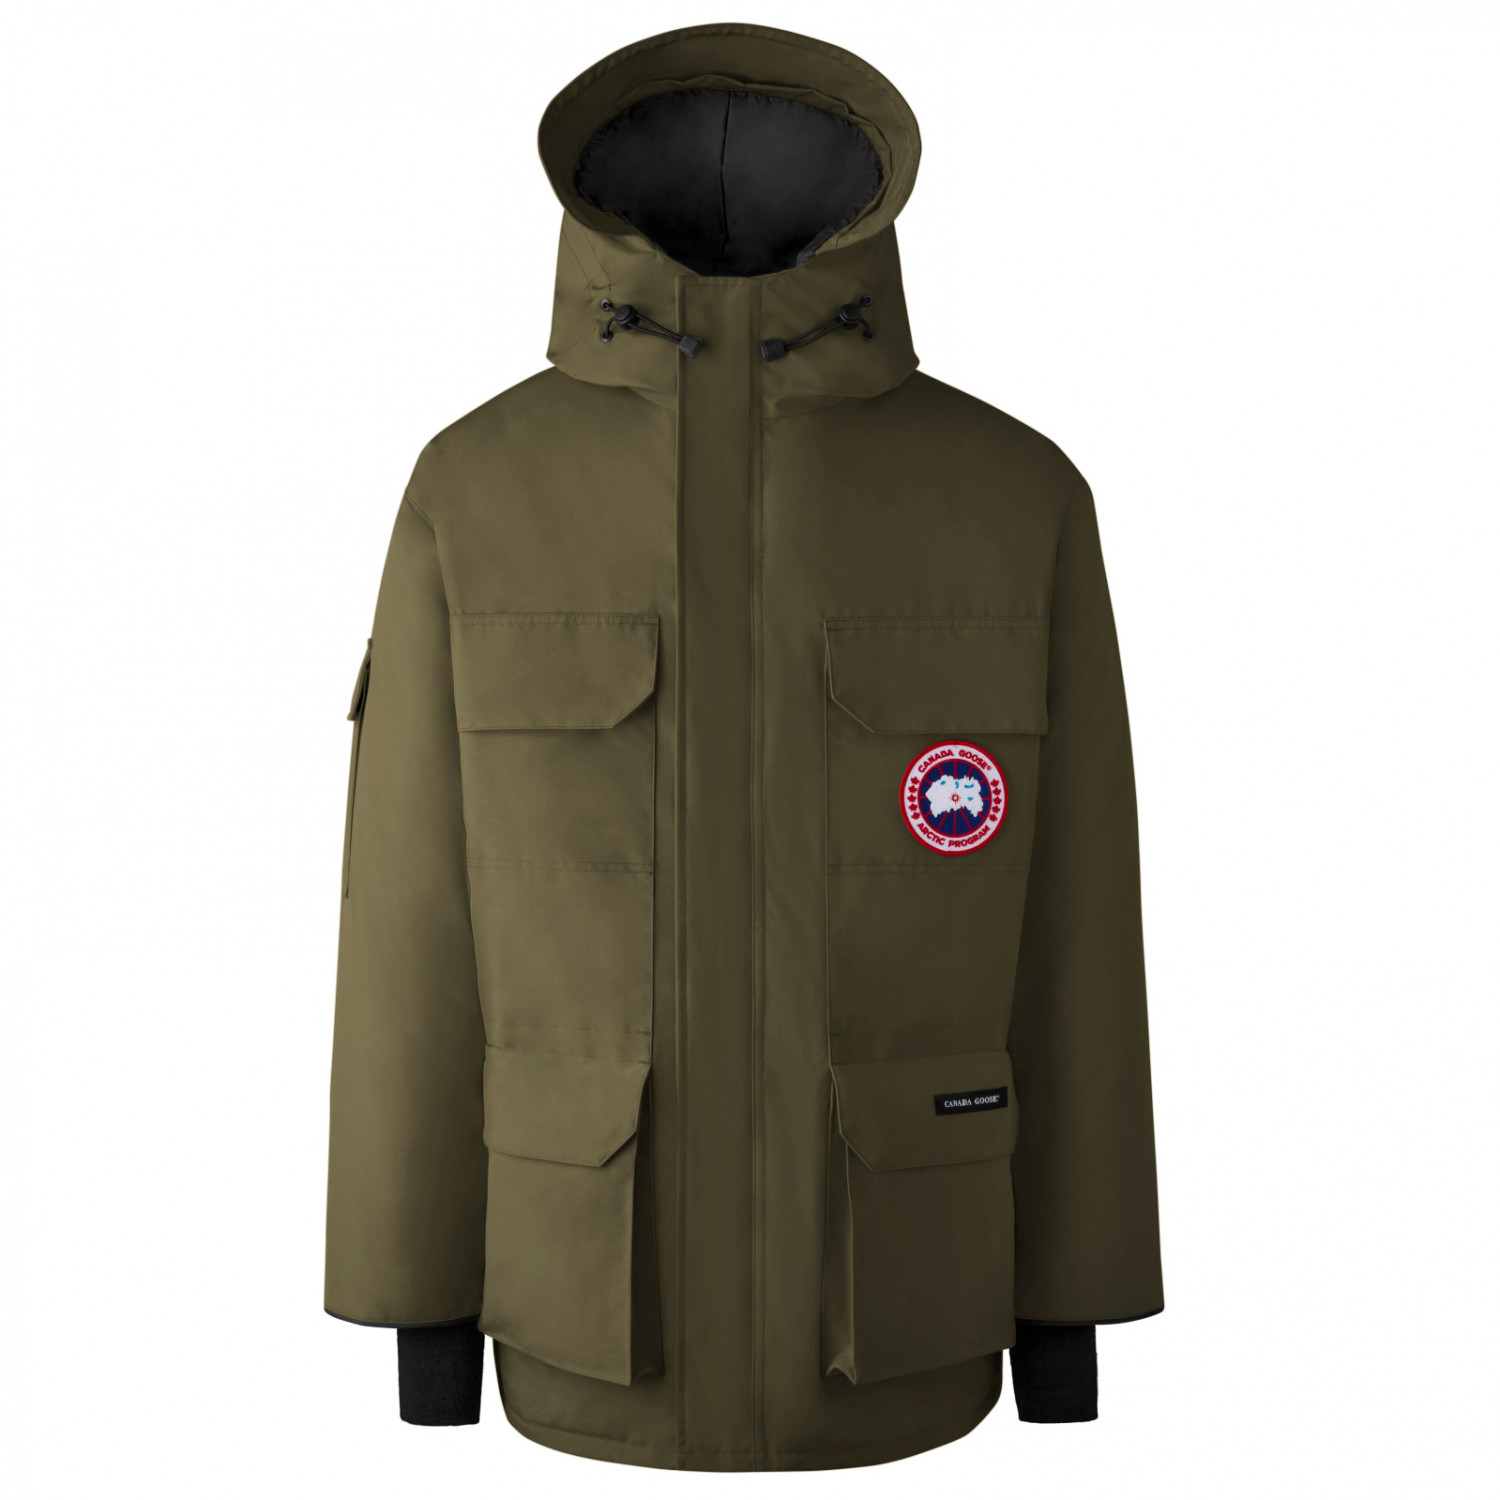 ab131c945a2f Canada Goose Expedition Parka - Winter jacket Men s